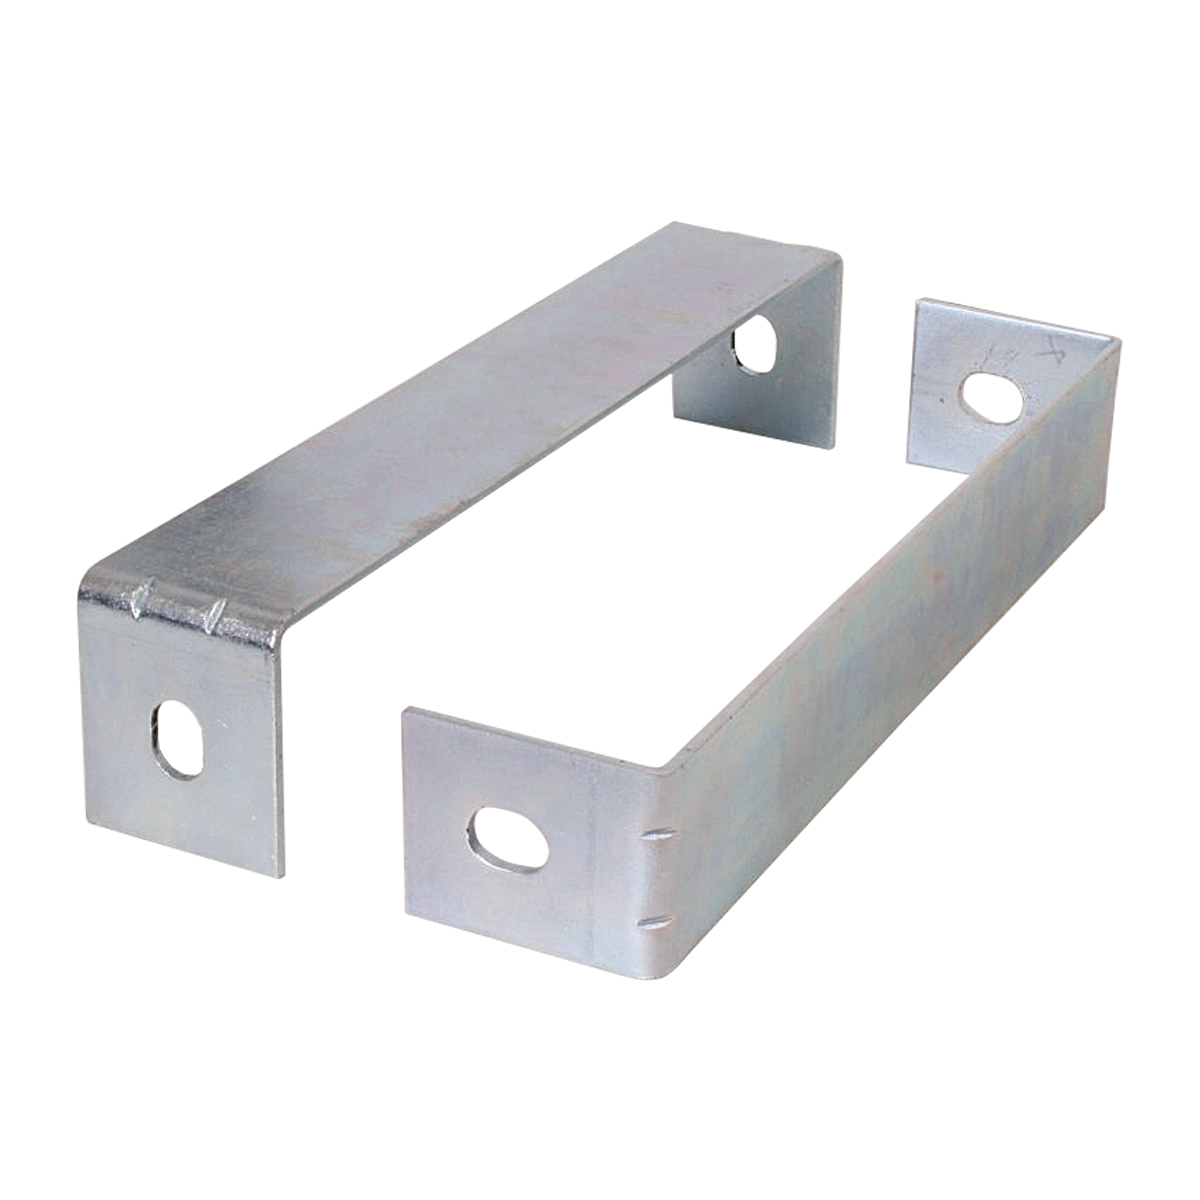 #91669 Stainless Steel Panel - Brackets